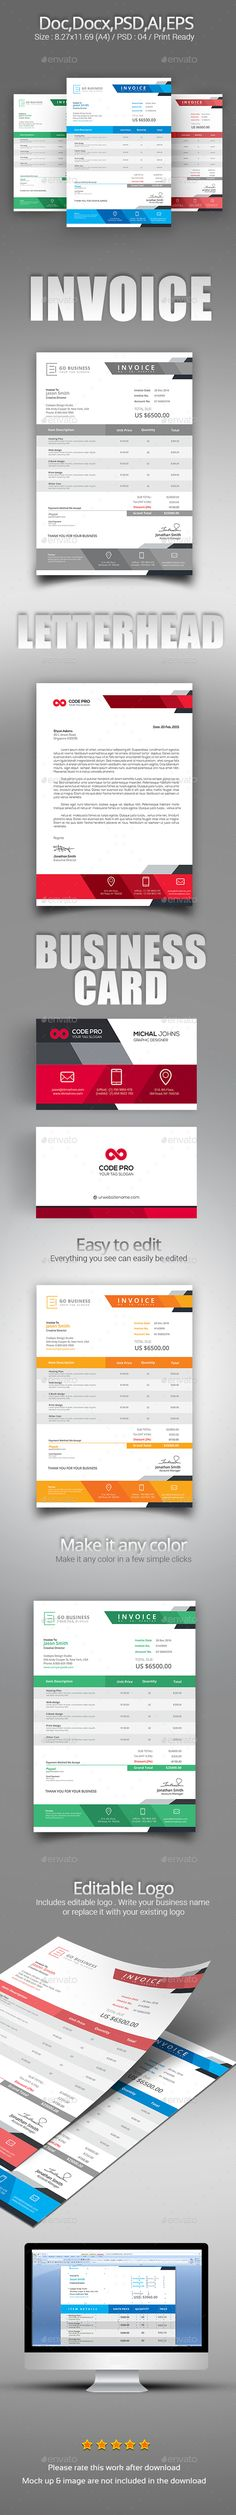 The Invoice Template PSD, AI, EPS, MS Word Set